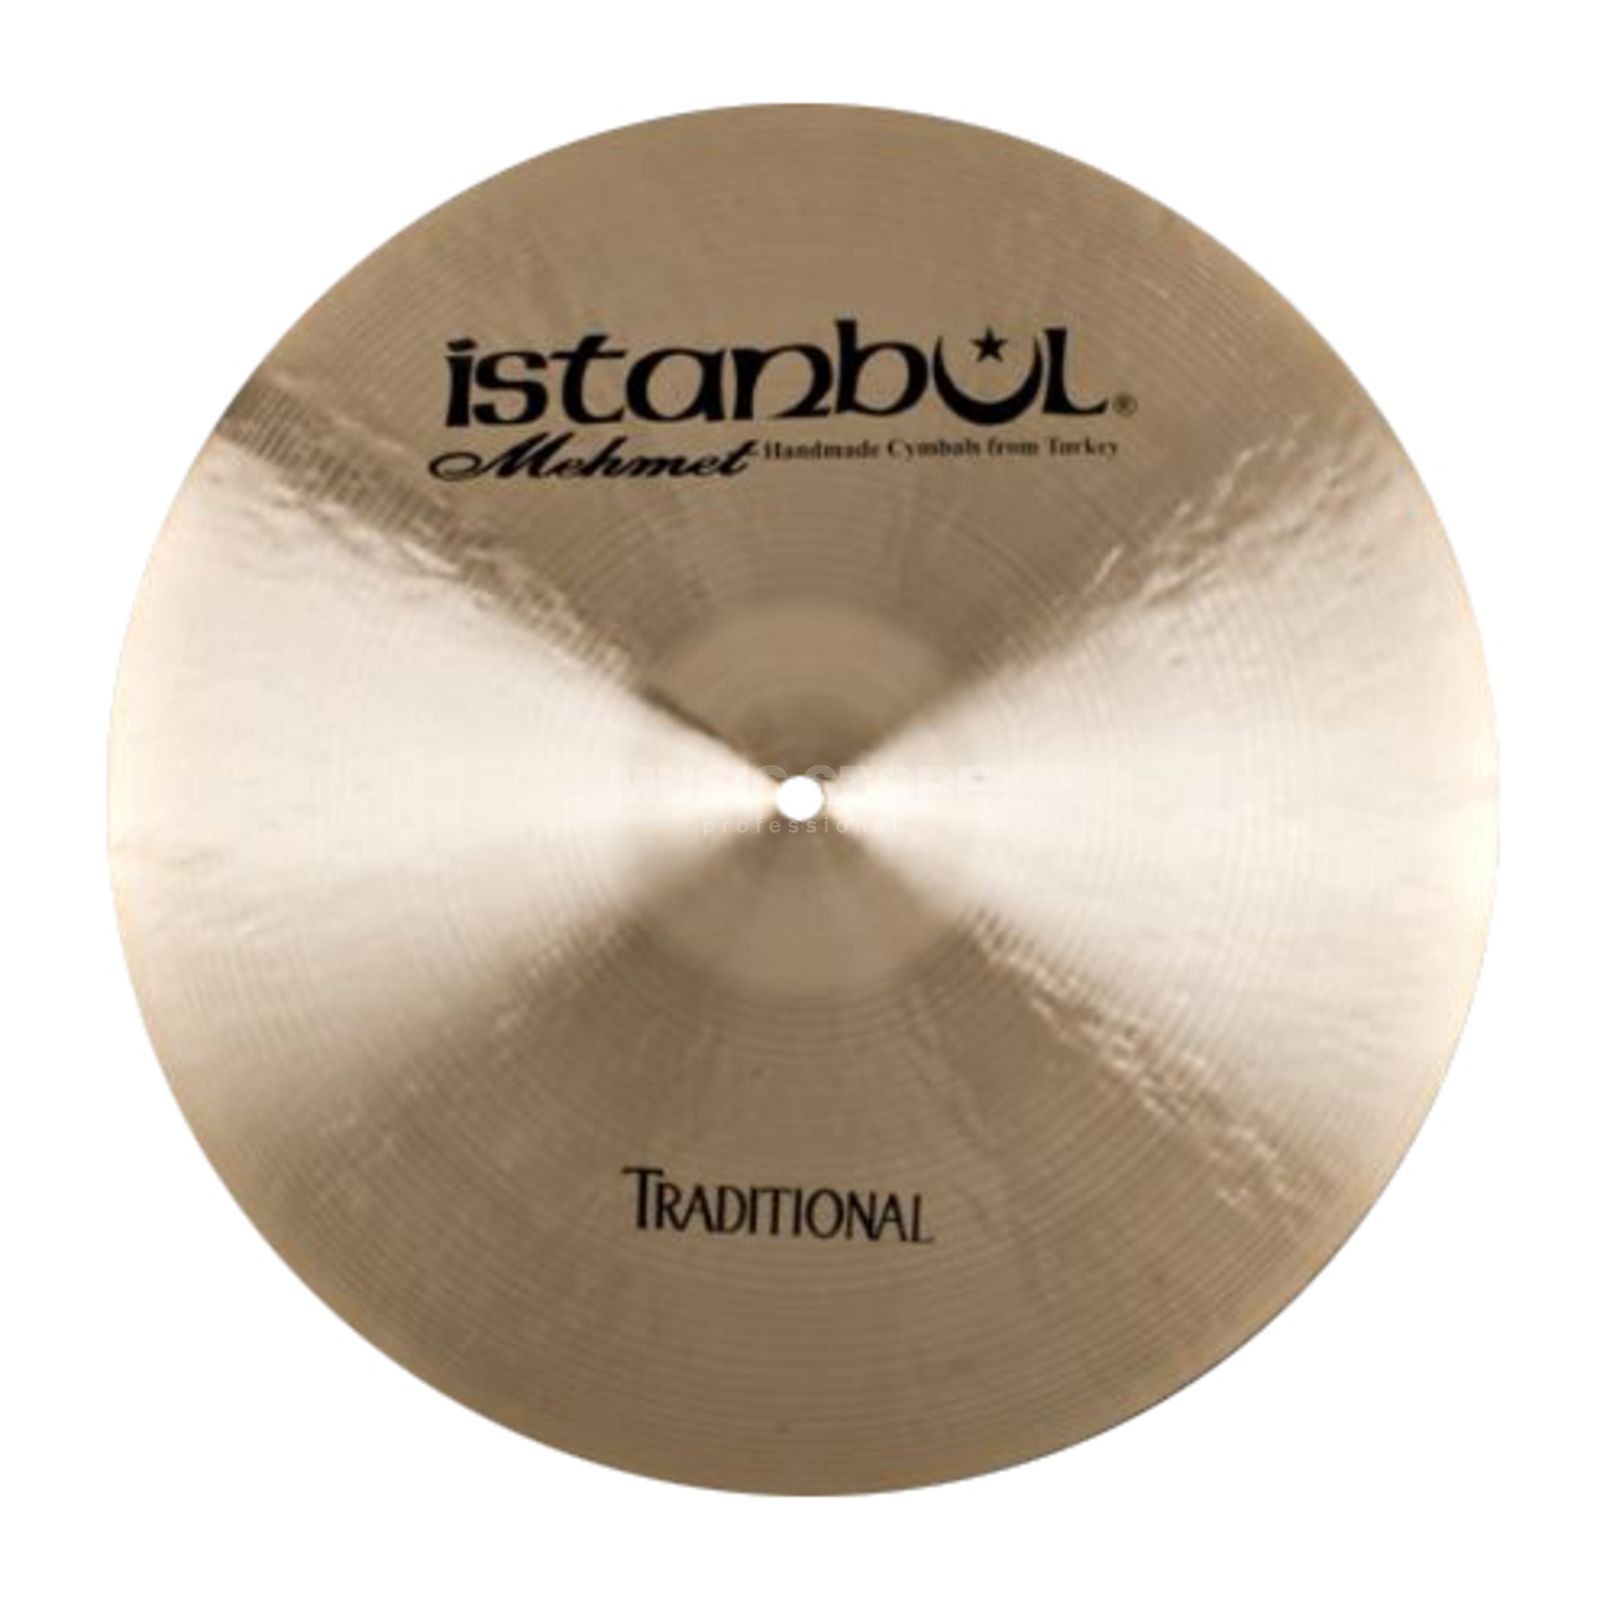 "Istanbul Traditional Dark Crash 19"", CD20 Produktbillede"